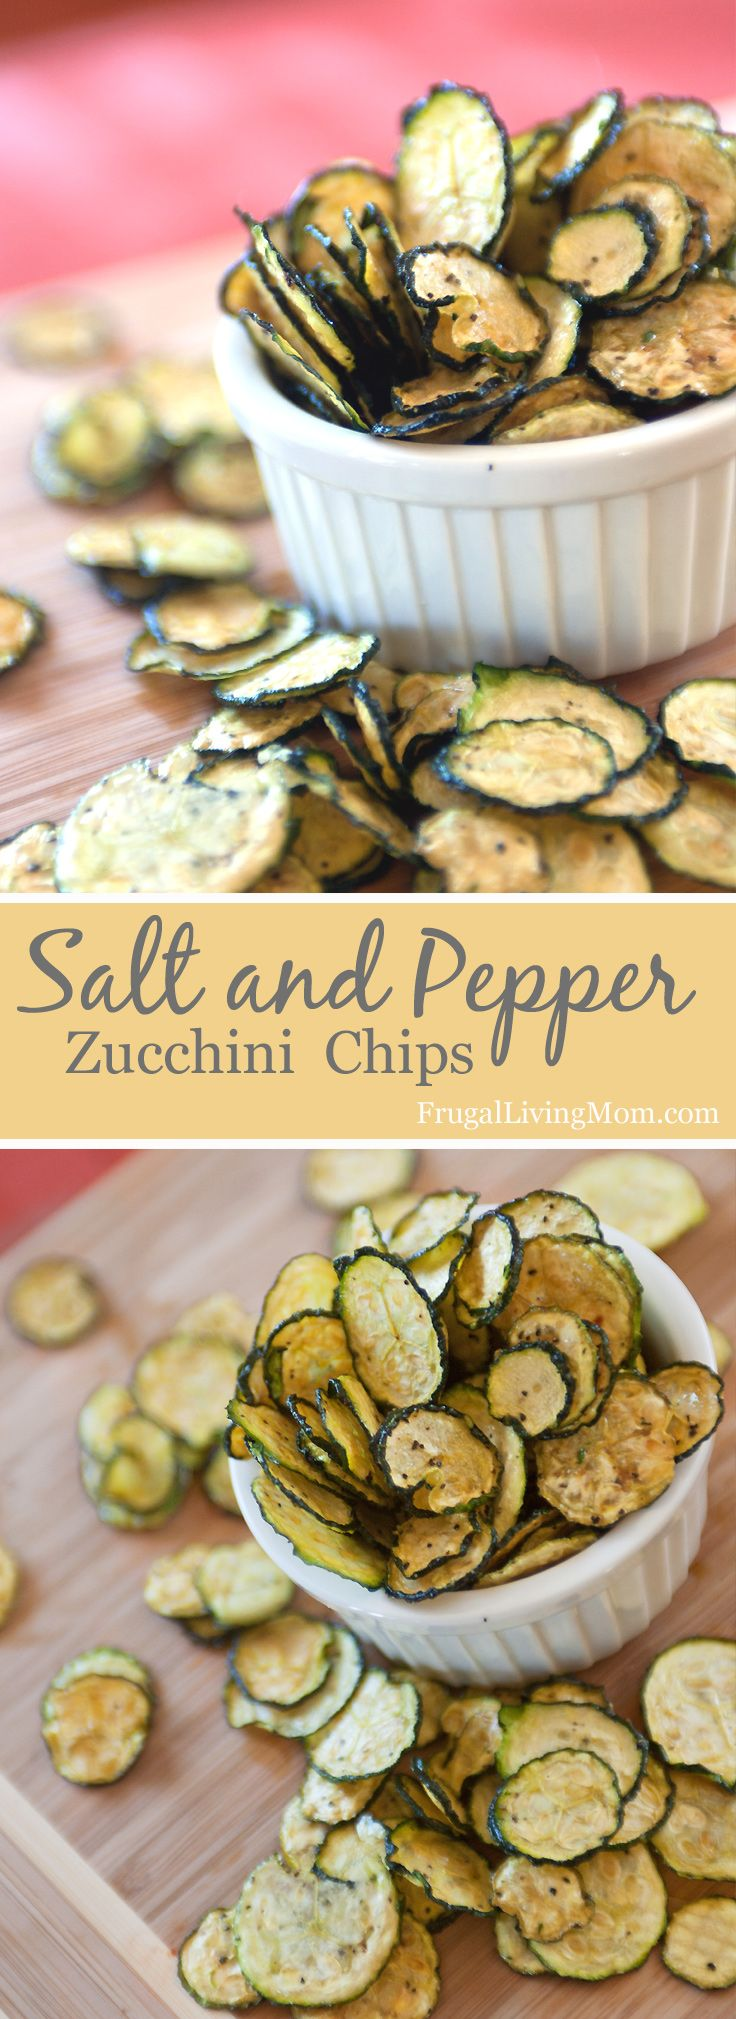 goth necklace Salt and Pepper Zucchini Chips Super yummy and healthy You can make these with a dehydrator or in the oven zucchini